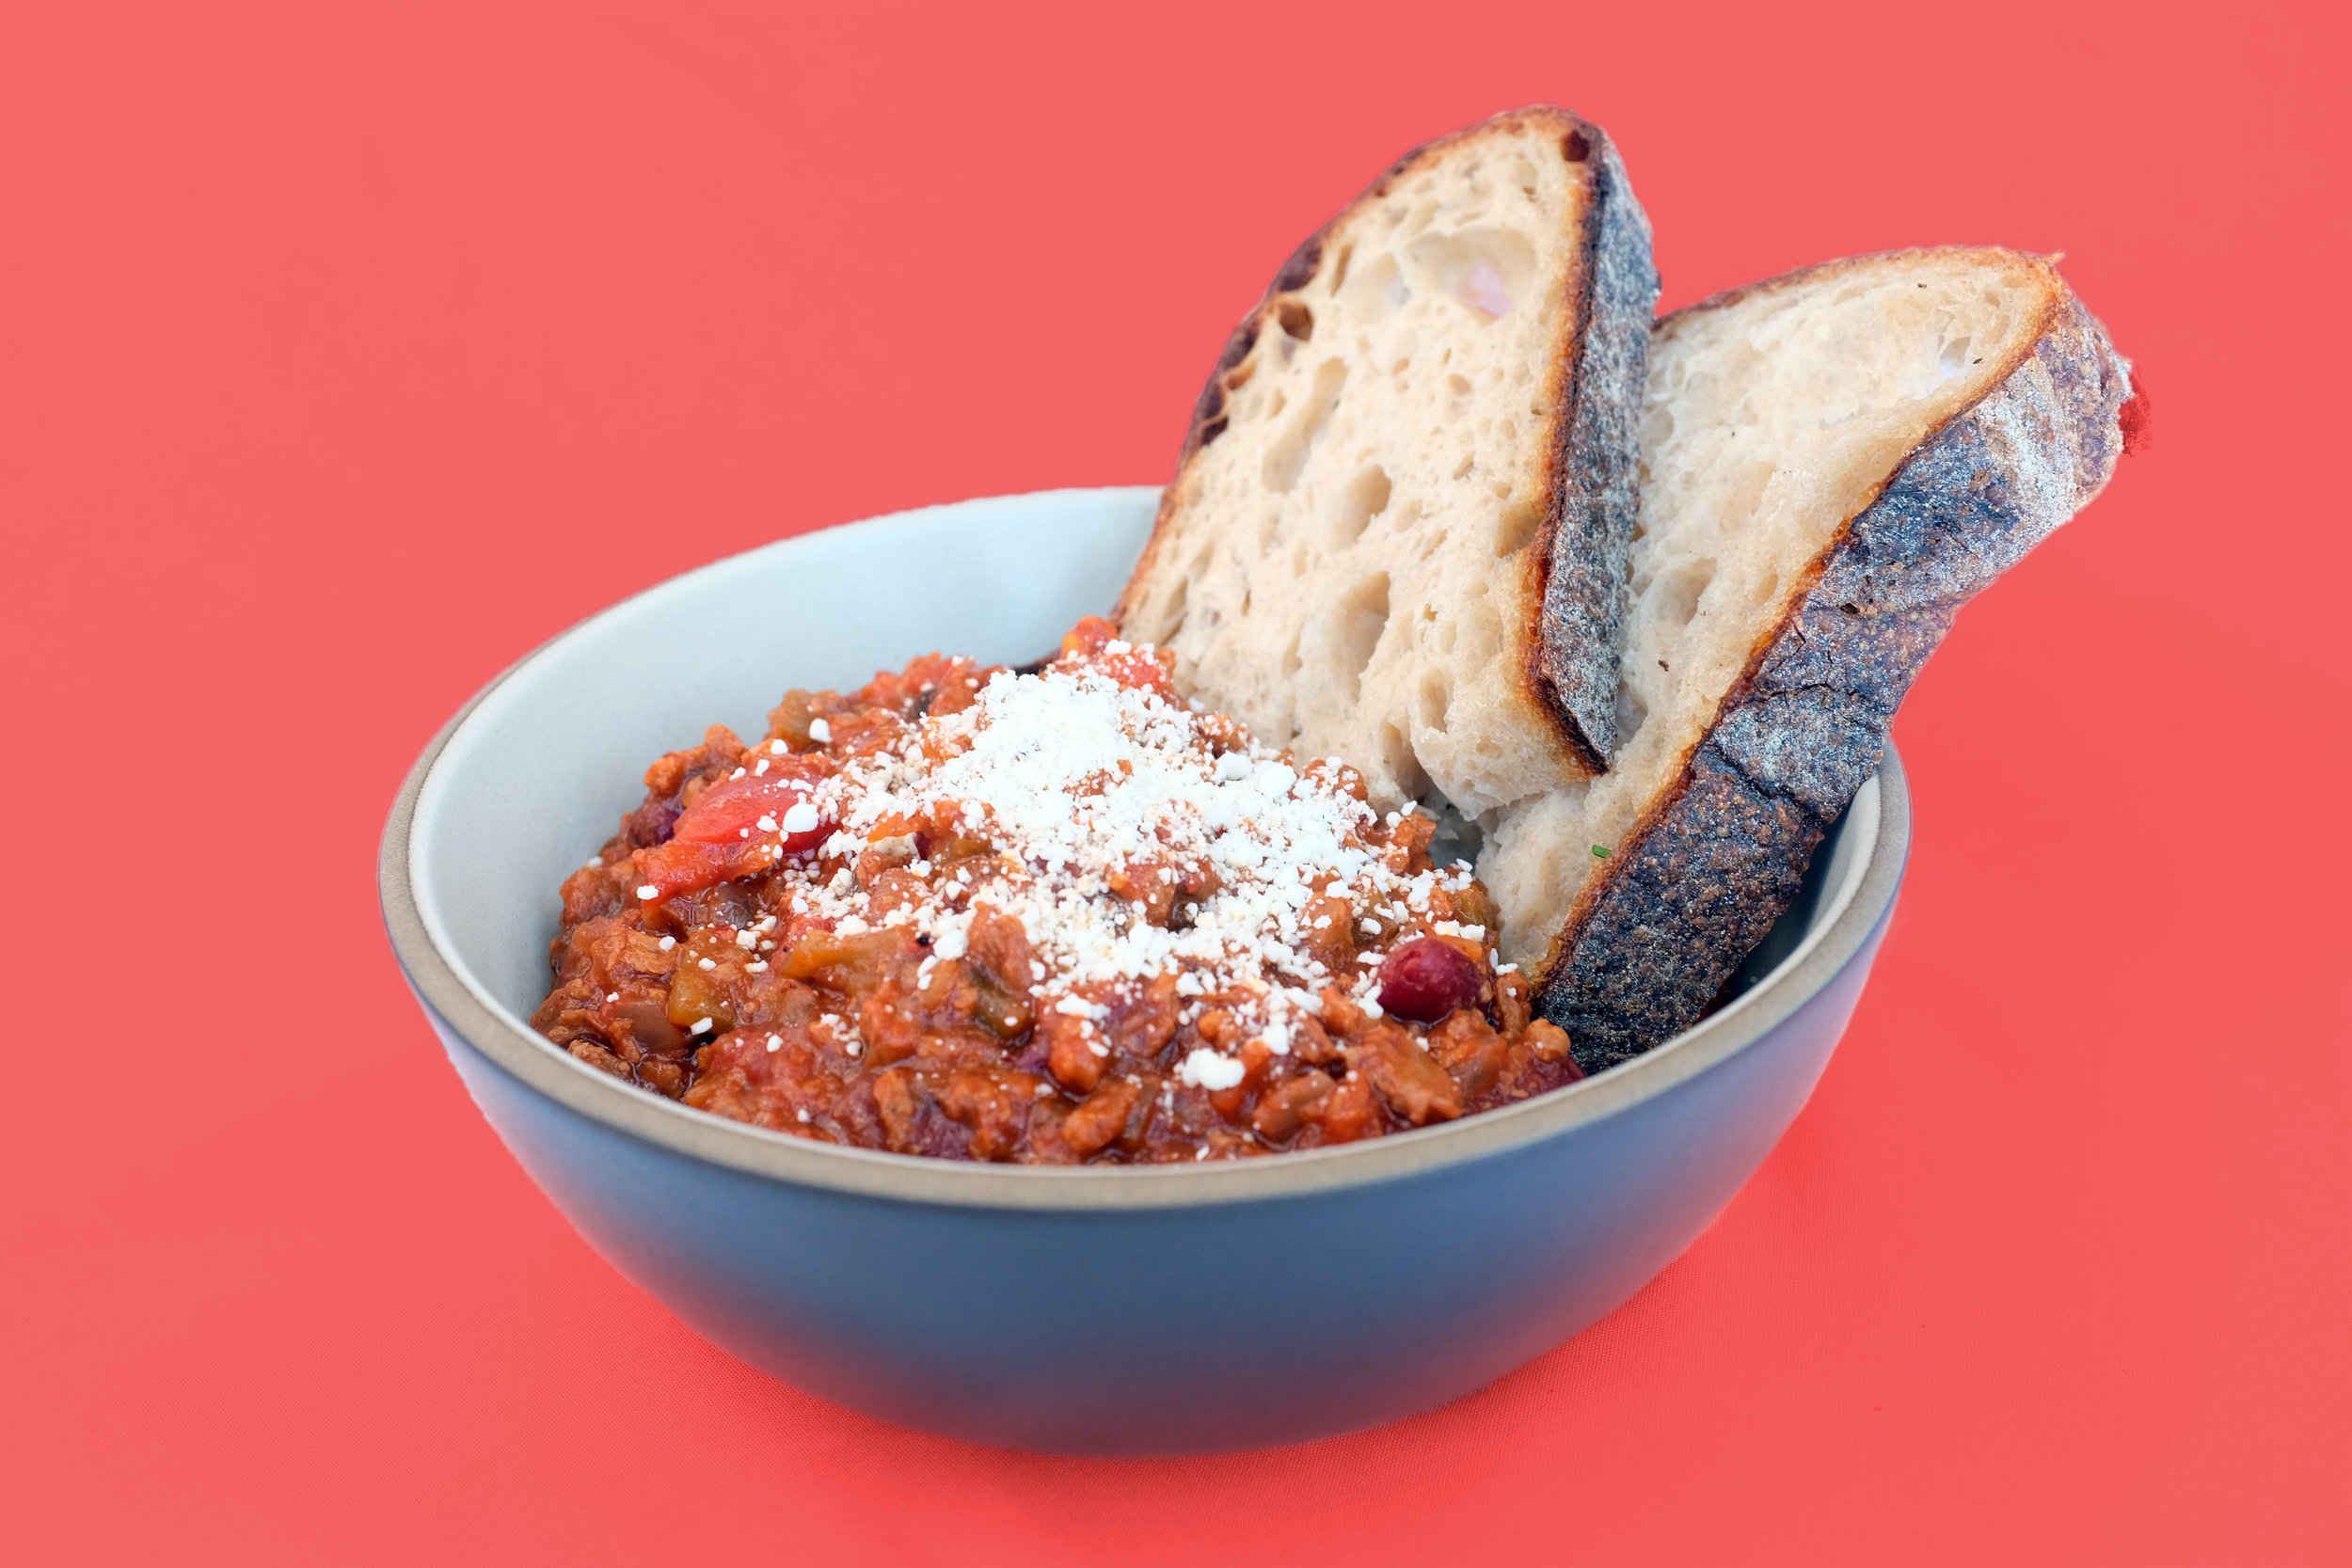 Unicorn Meat Chili - The flavors of this chili are inspired by the desert southwest and the sauces help boost the umami flavors. Using enamel cast iron helps caramelize the red tomatoes into a deep brown sauce.